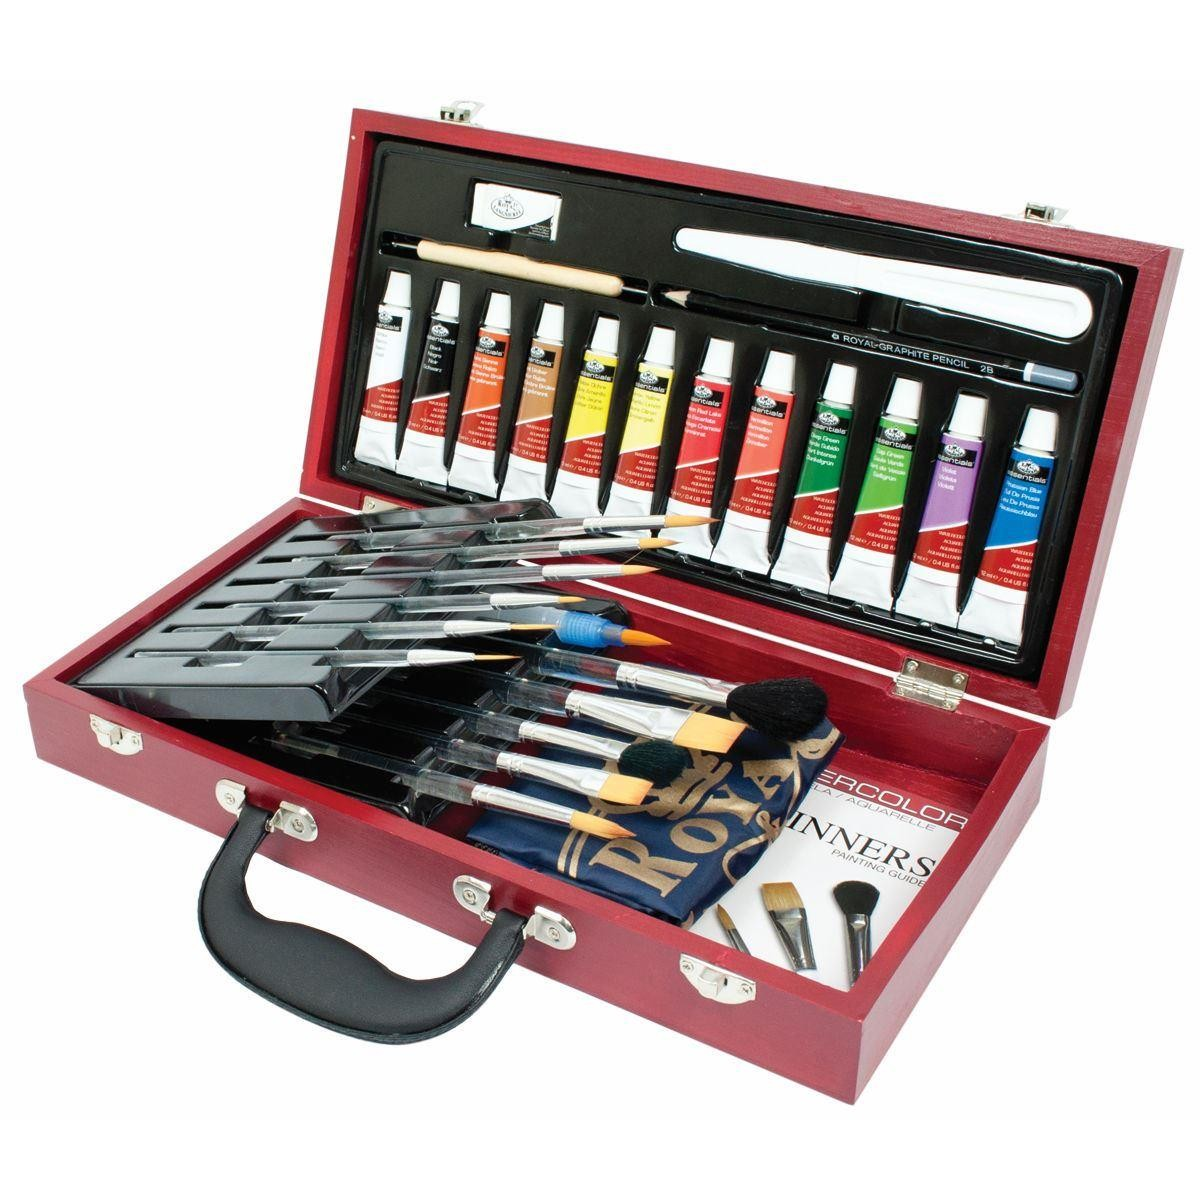 Royal and Langnickel watercolour paint wooden box set RSET-WAT2000